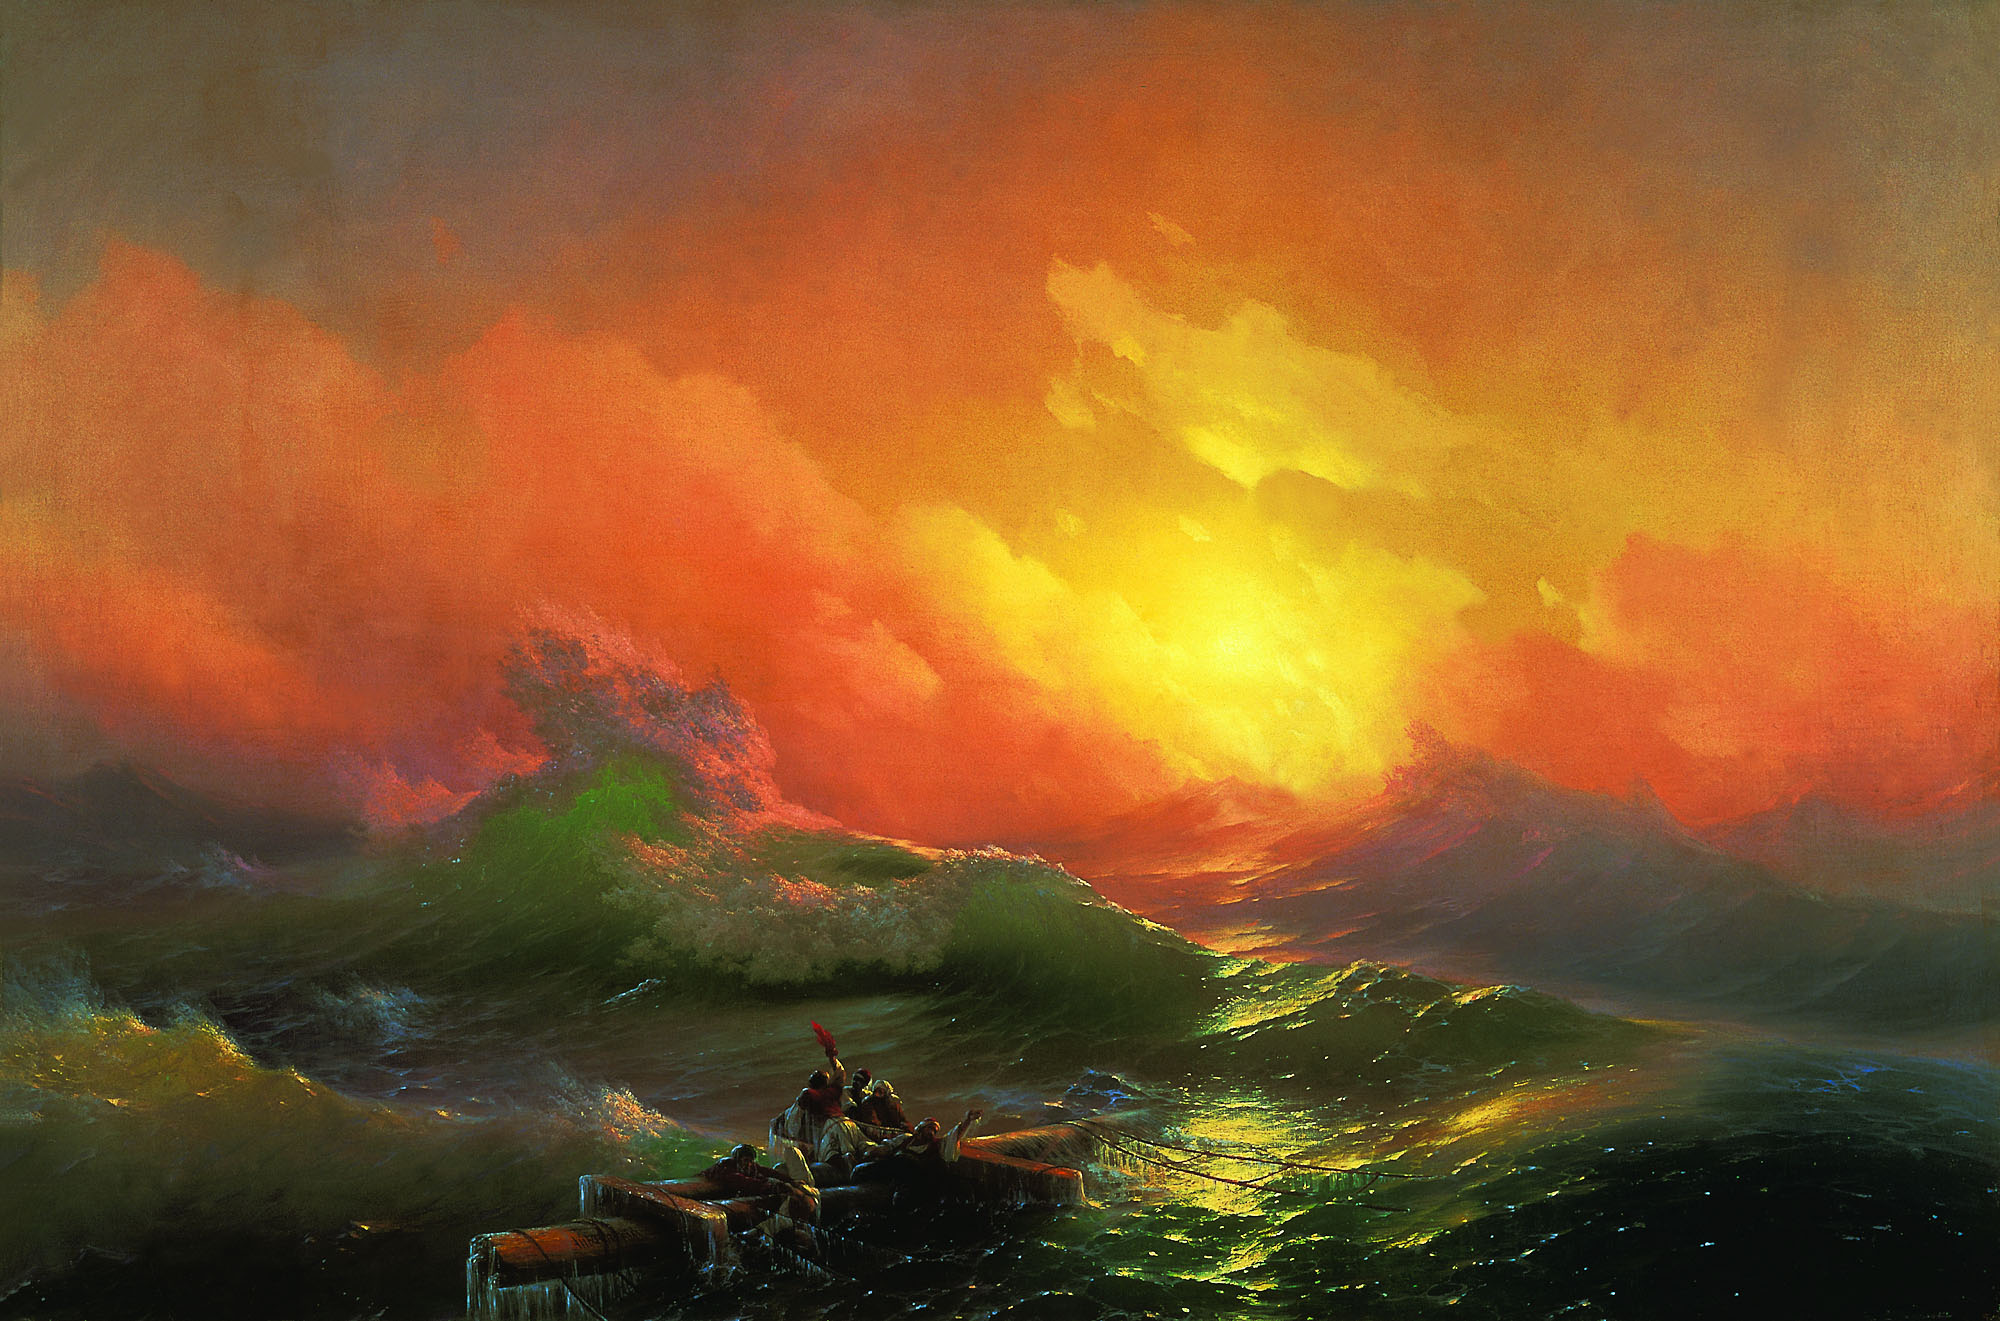 Ivan Aivazovsky - The ninth wave, oil on canvas (1850)